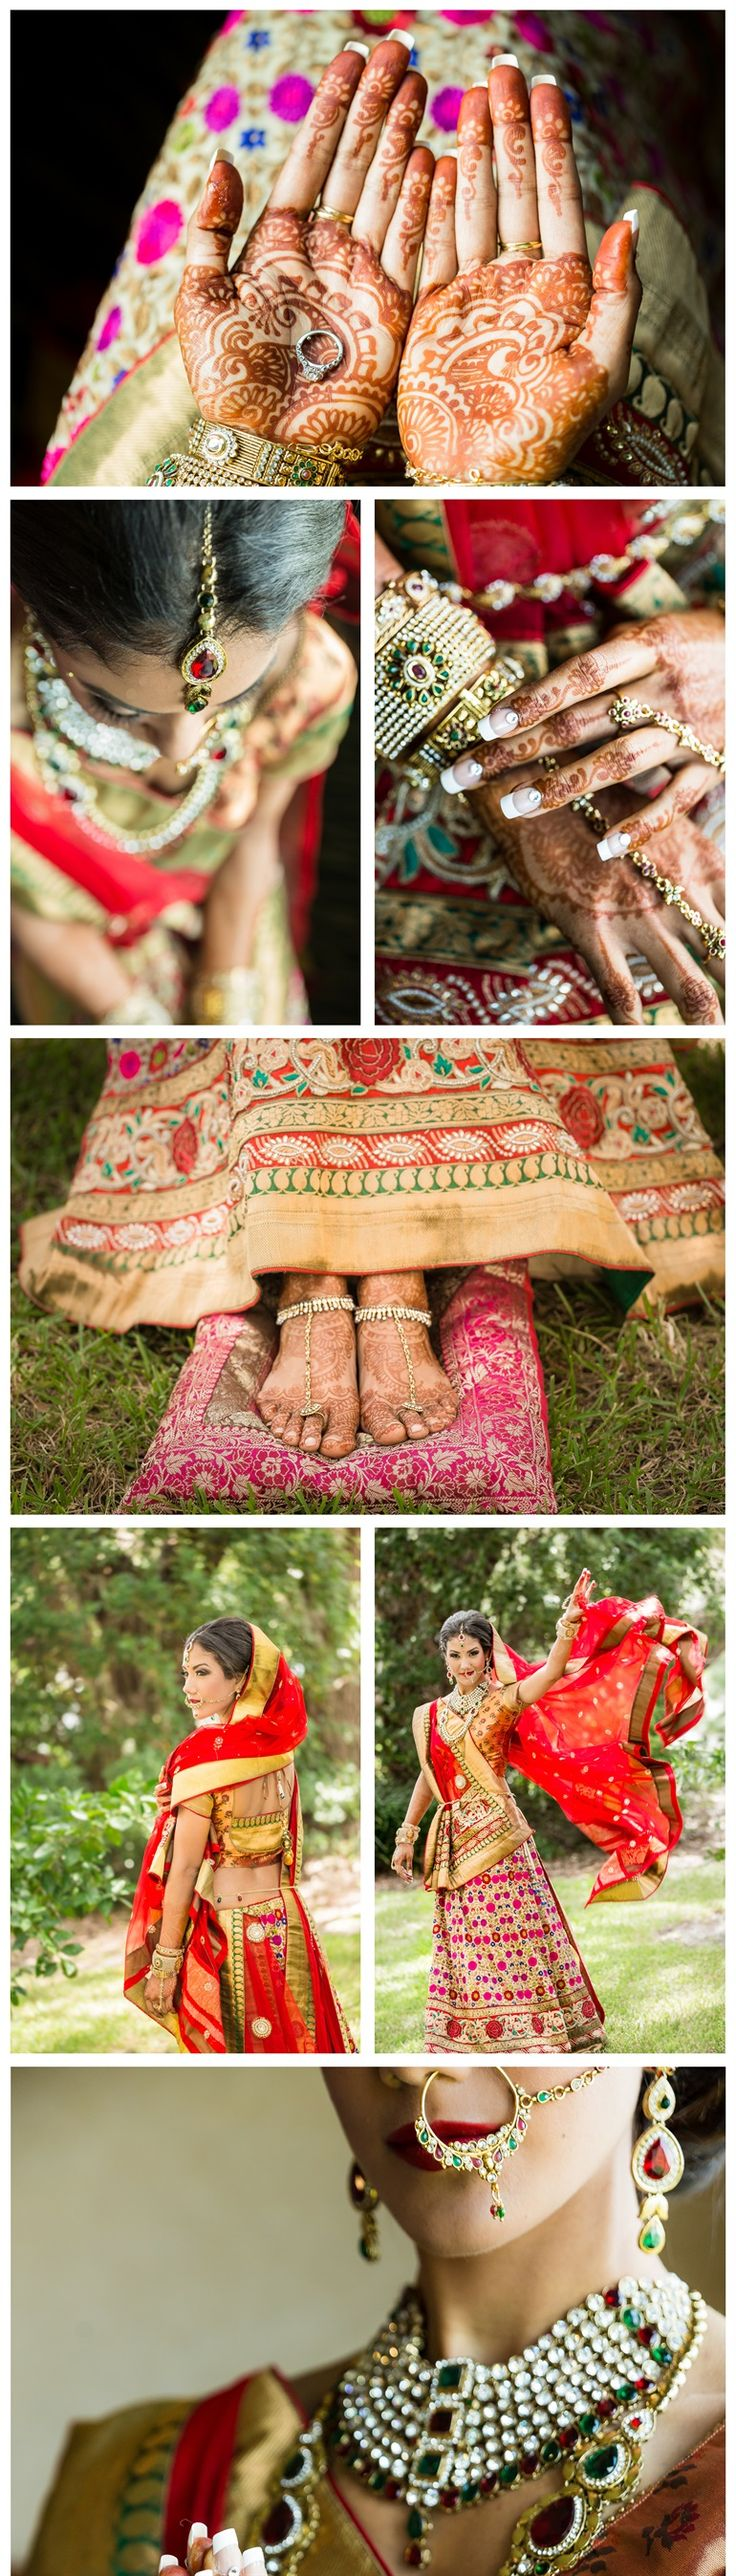 Indian bride + henna + jewelry prettiness| styled shoot | Rising Lotus Photography